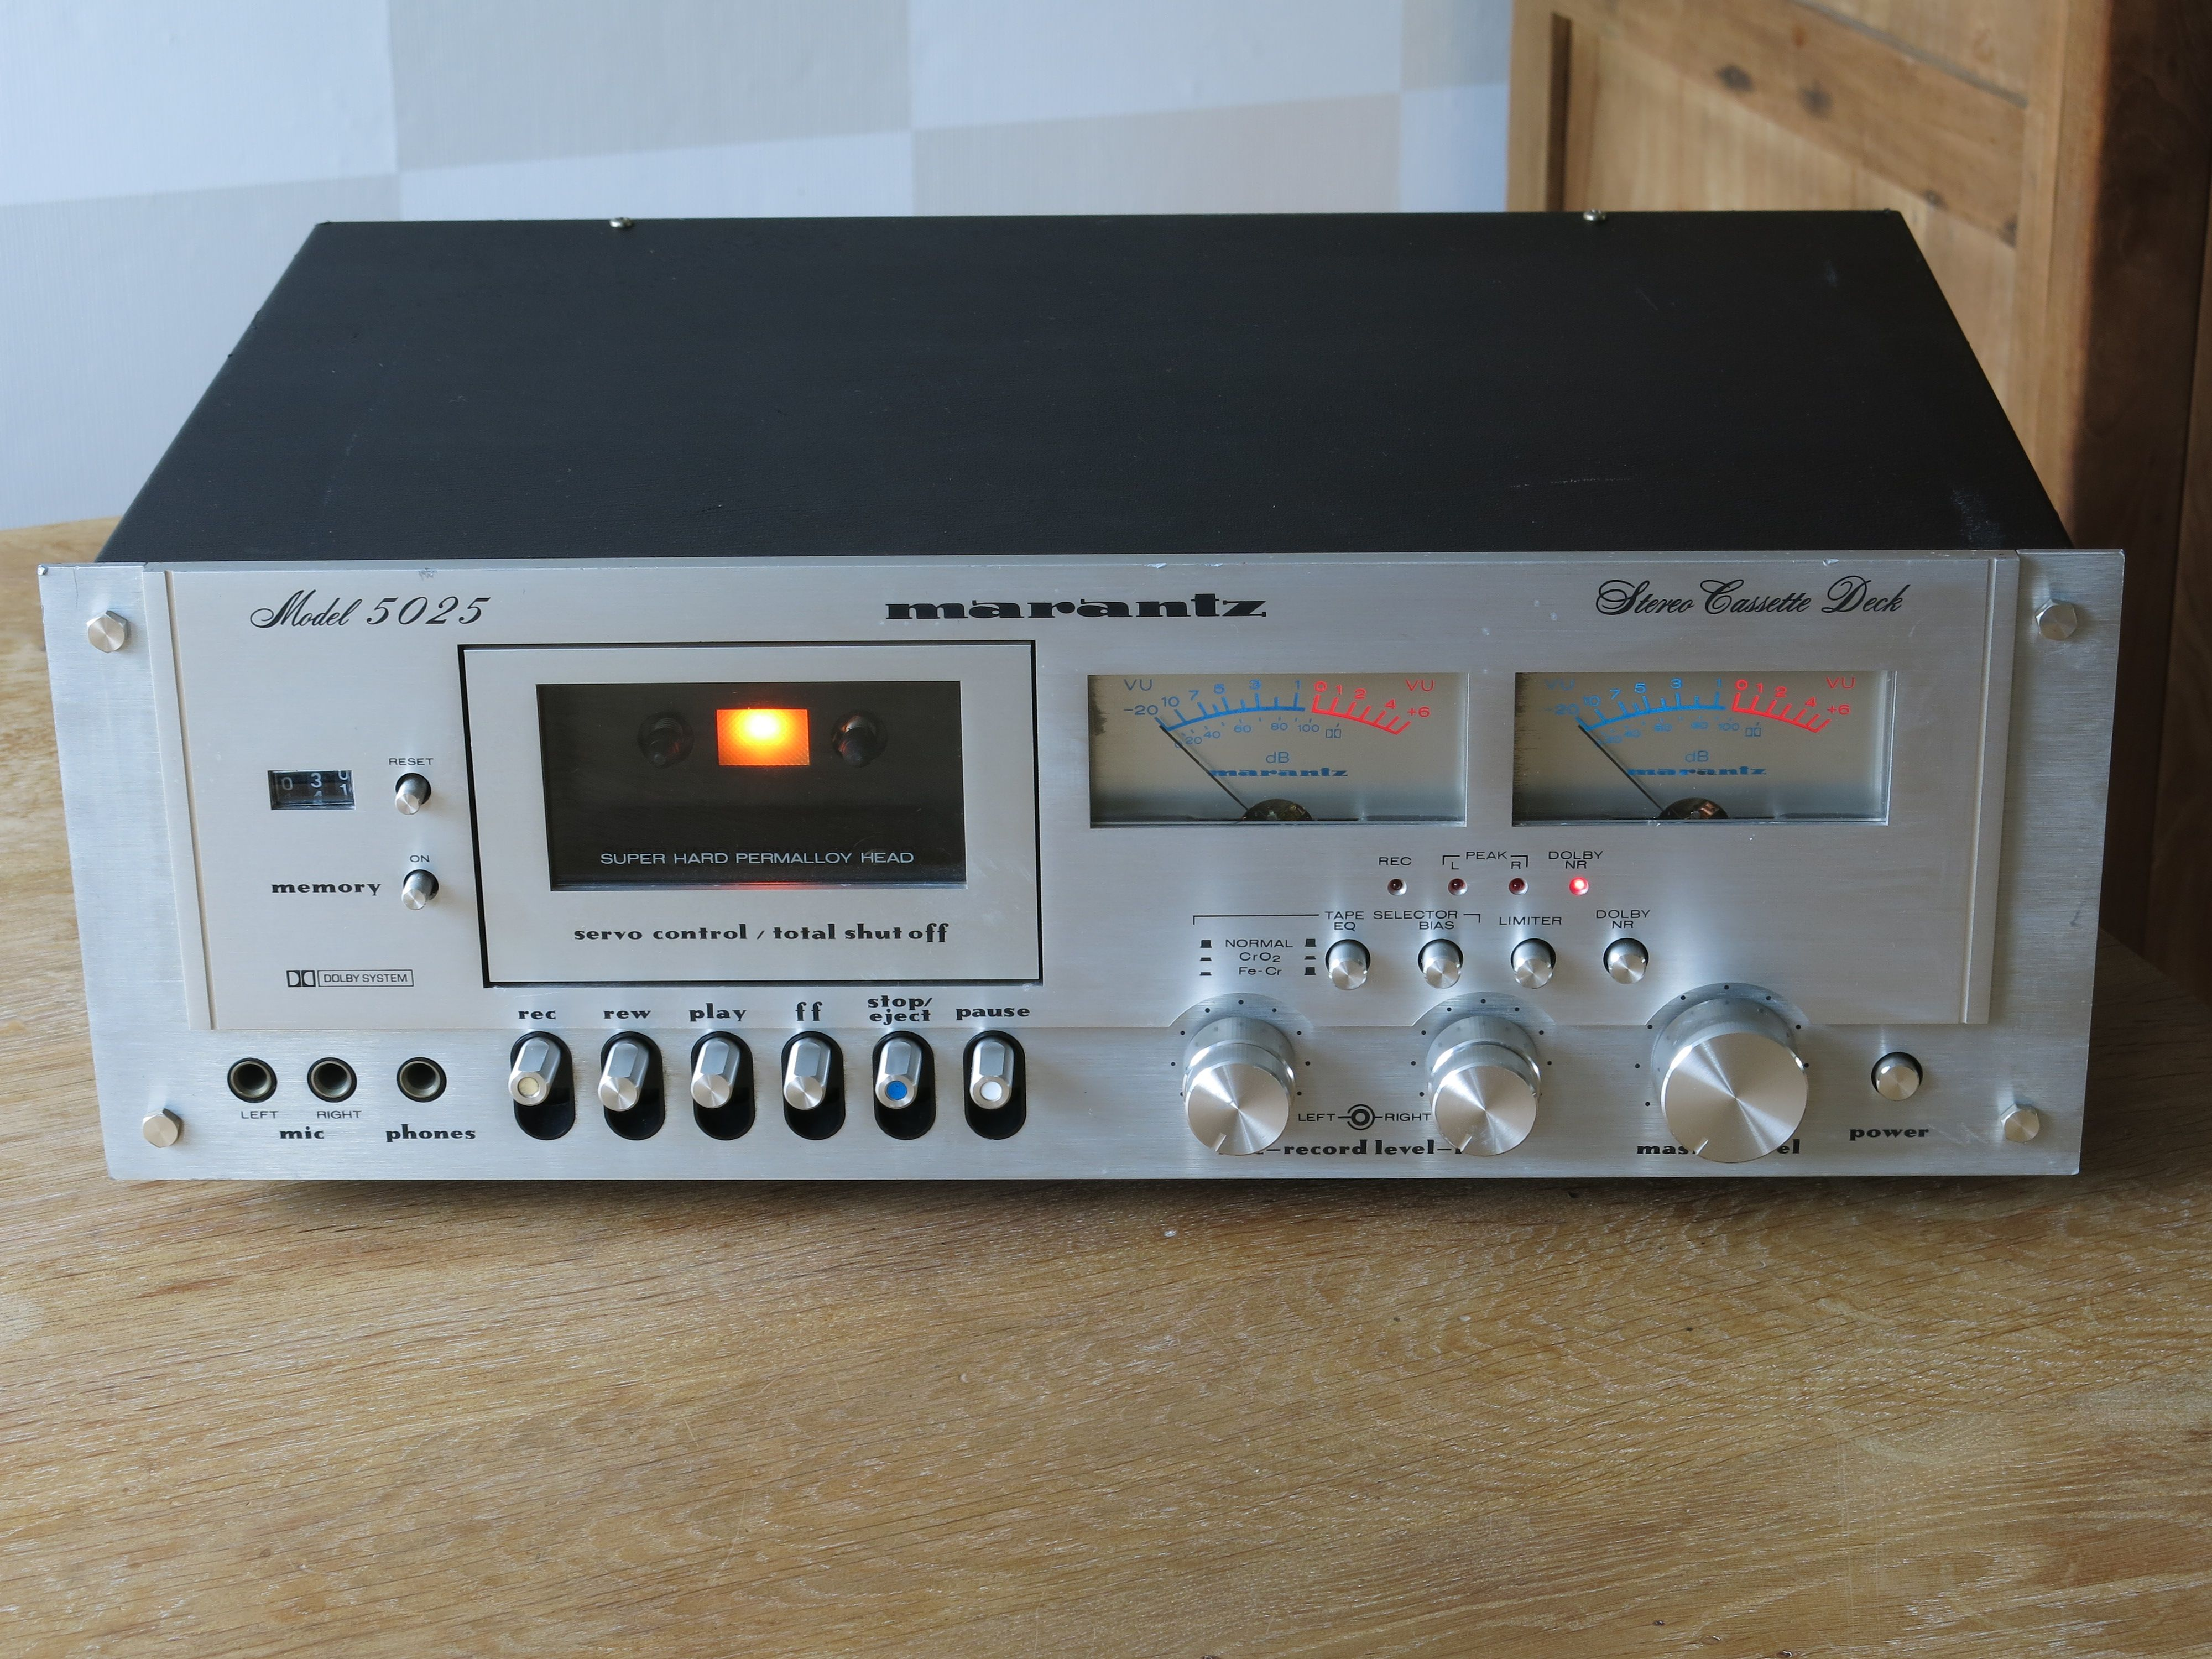 Marantz Stereo Cassette Deck Model 5025 1980 Retro